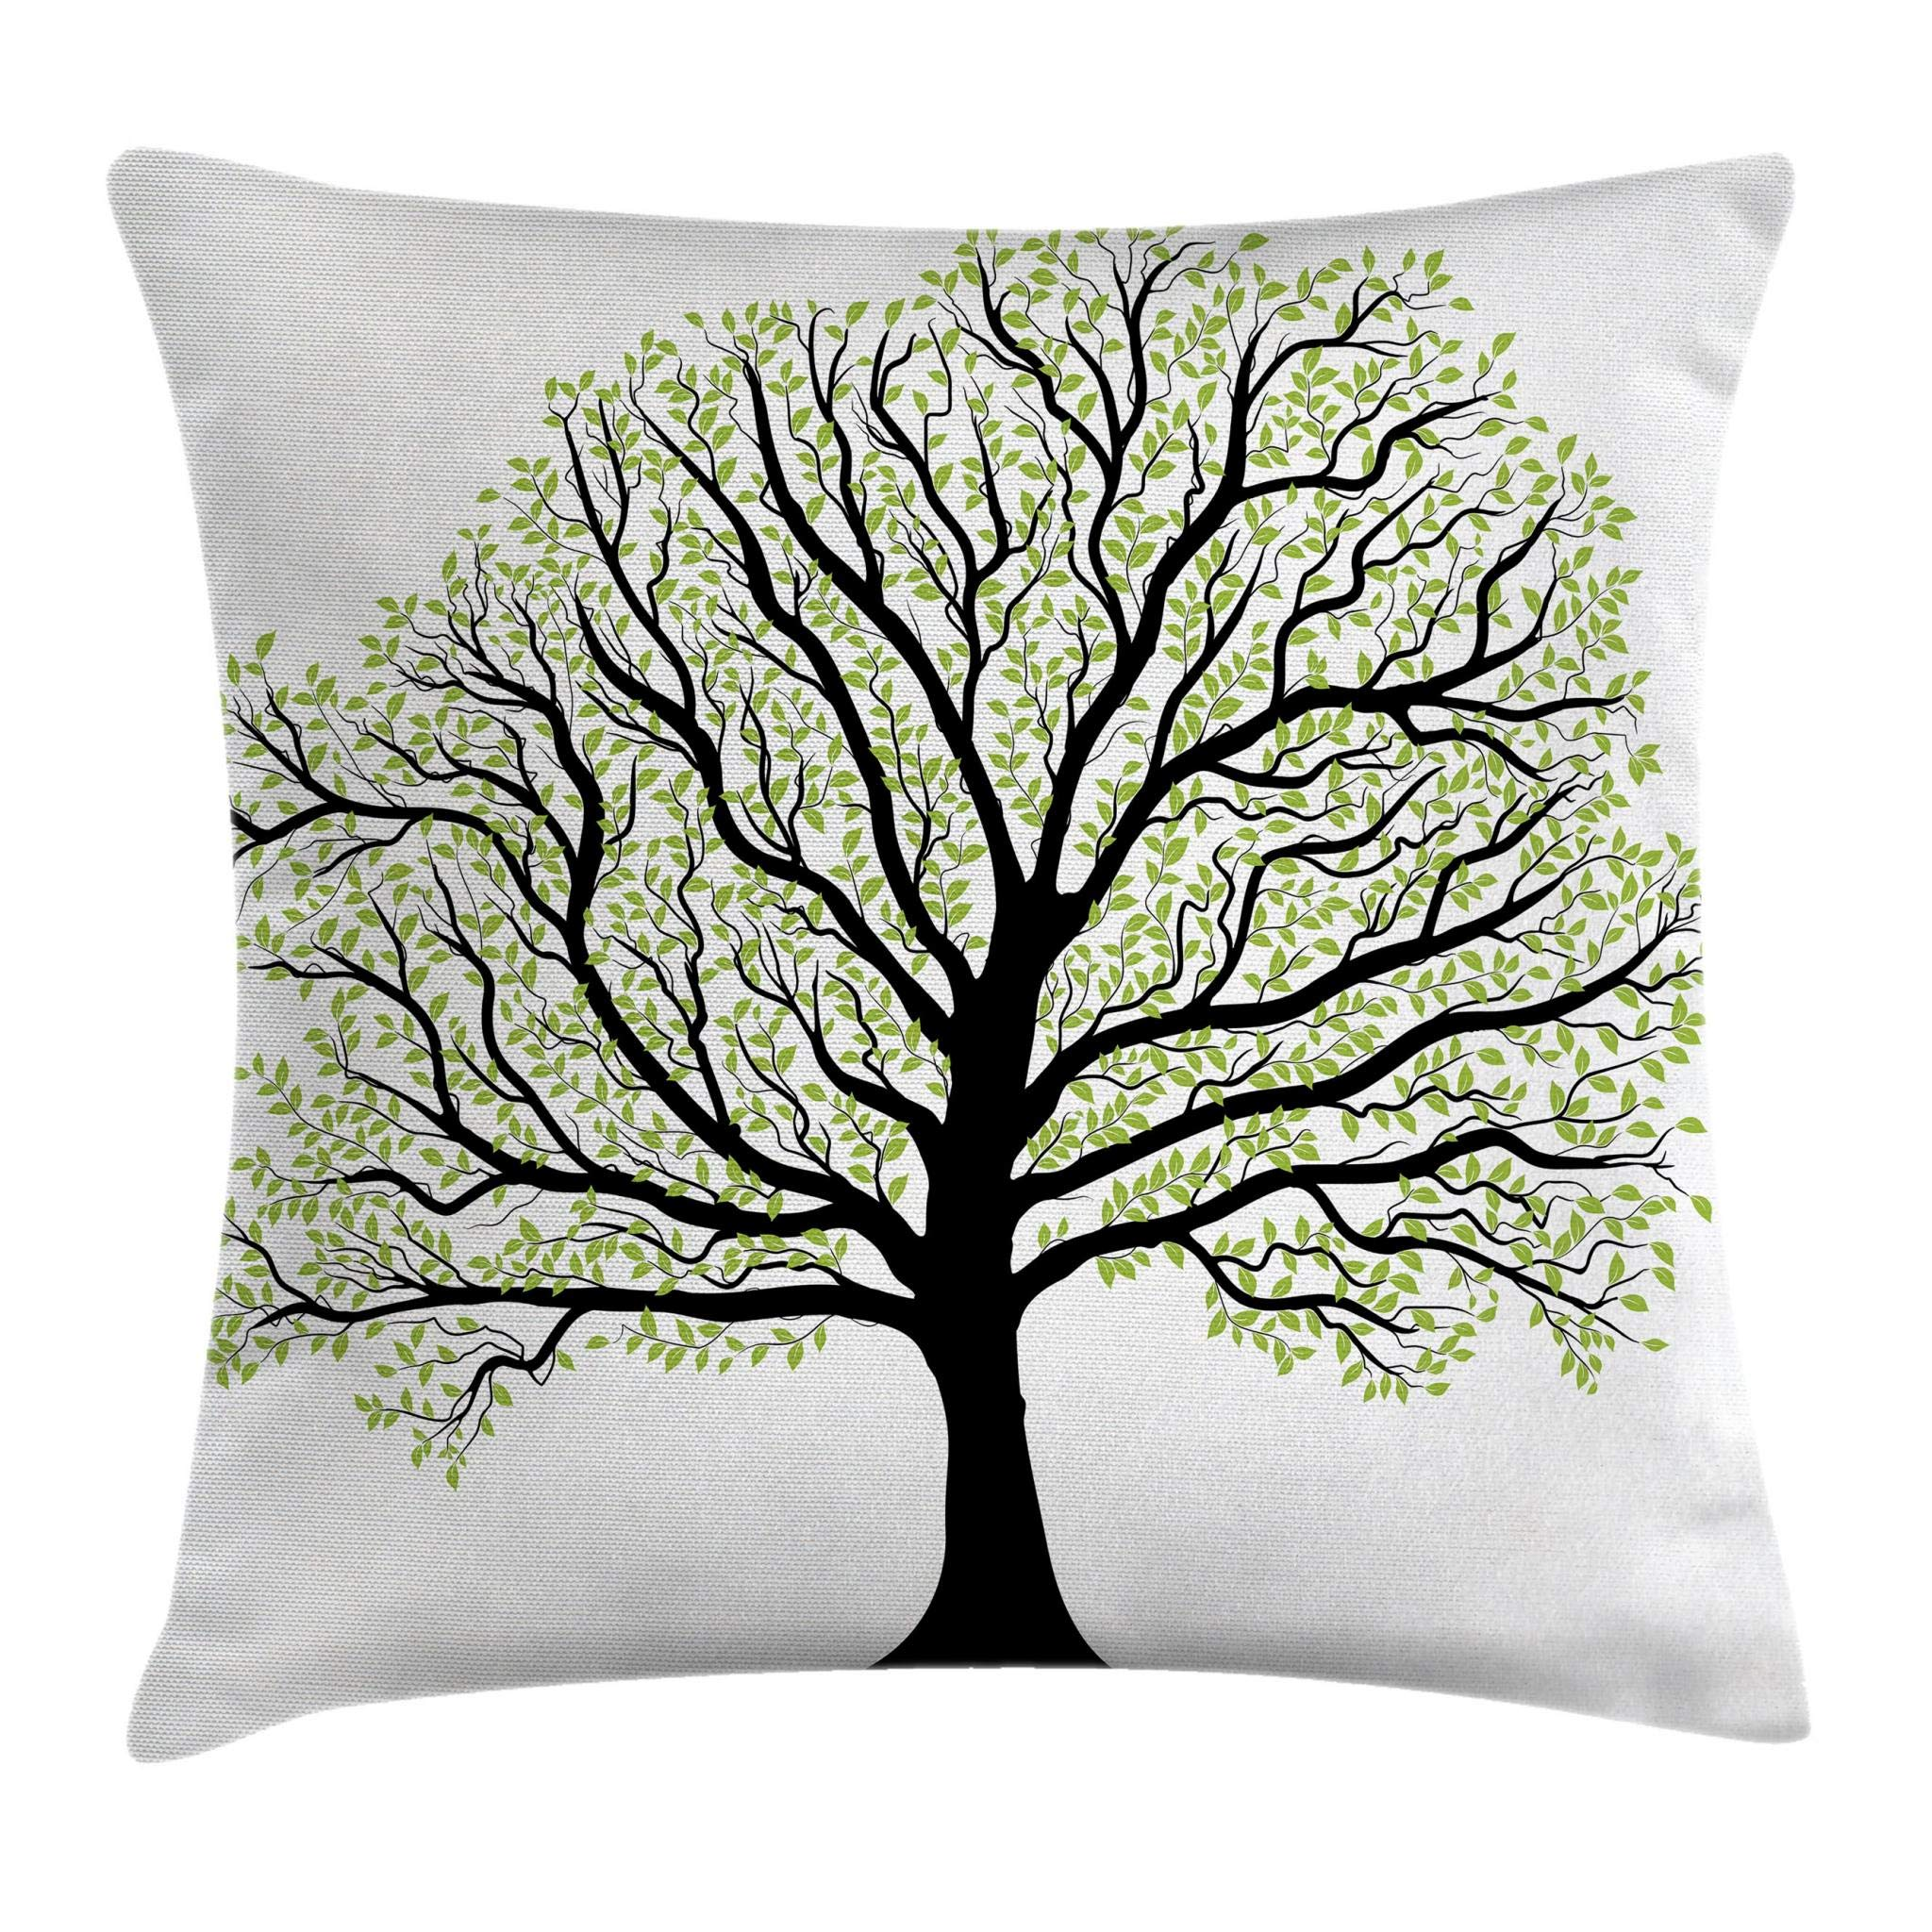 Ambesonne Tree of Life Throw Pillow Cushion Cover, Big Old Lush Tree with Lot of Leaves and Branches Nature Growth Eco Art, Decorative Square Accent Pillow Case, 24'' X 24'', Black White by Ambesonne